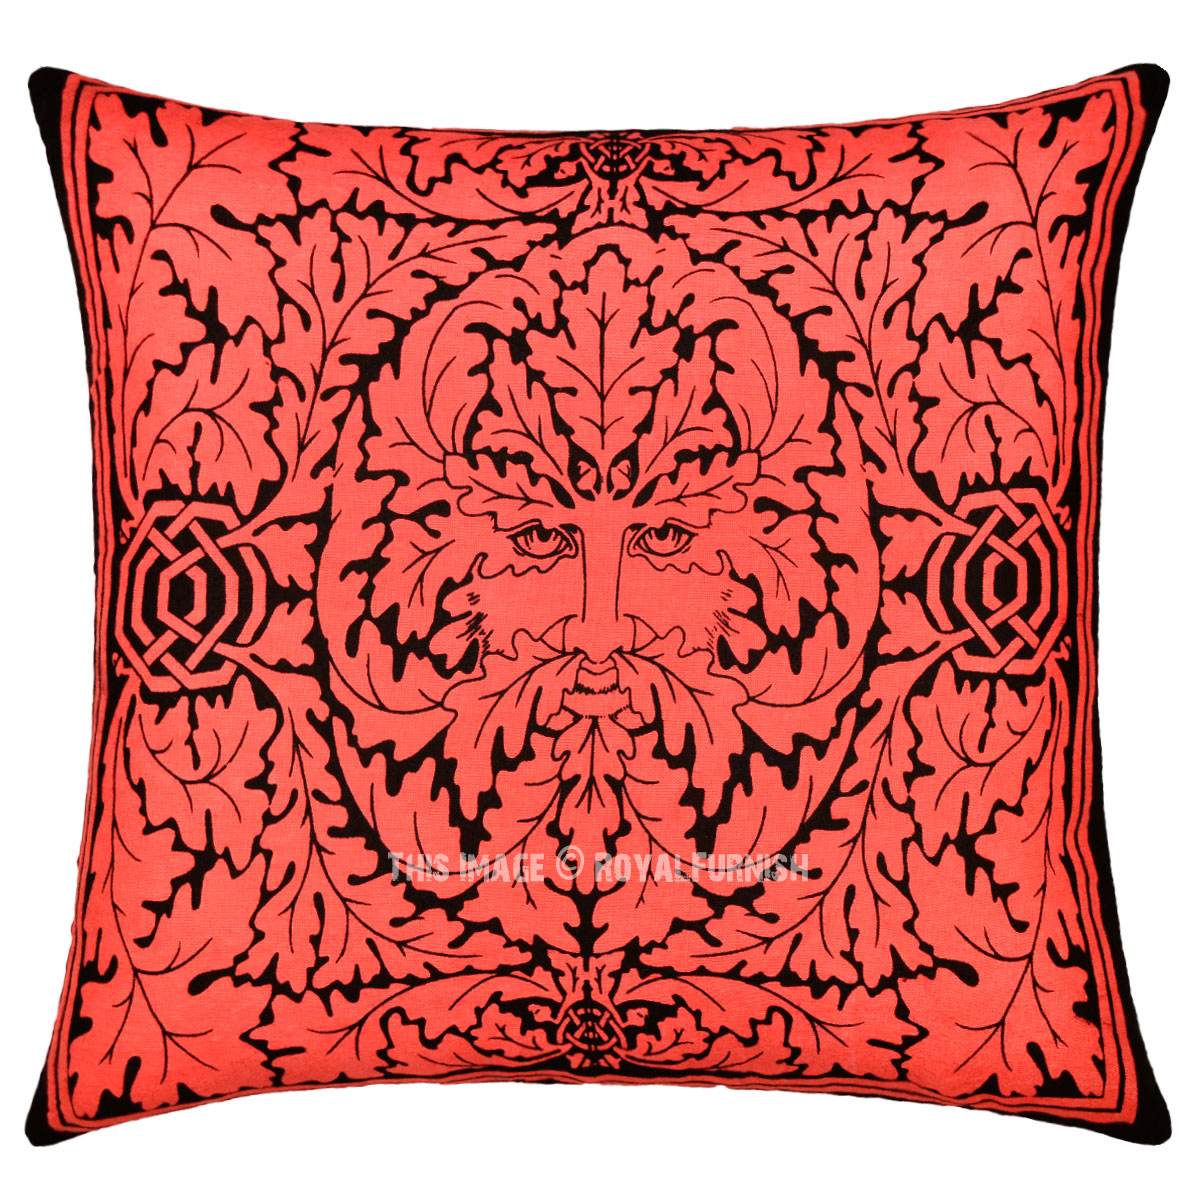 Throw Pillows Mustard Yellow : Red Greenman Featuring Decorative Tie Dye Throw Pillow Cover 16X16 - RoyalFurnish.com